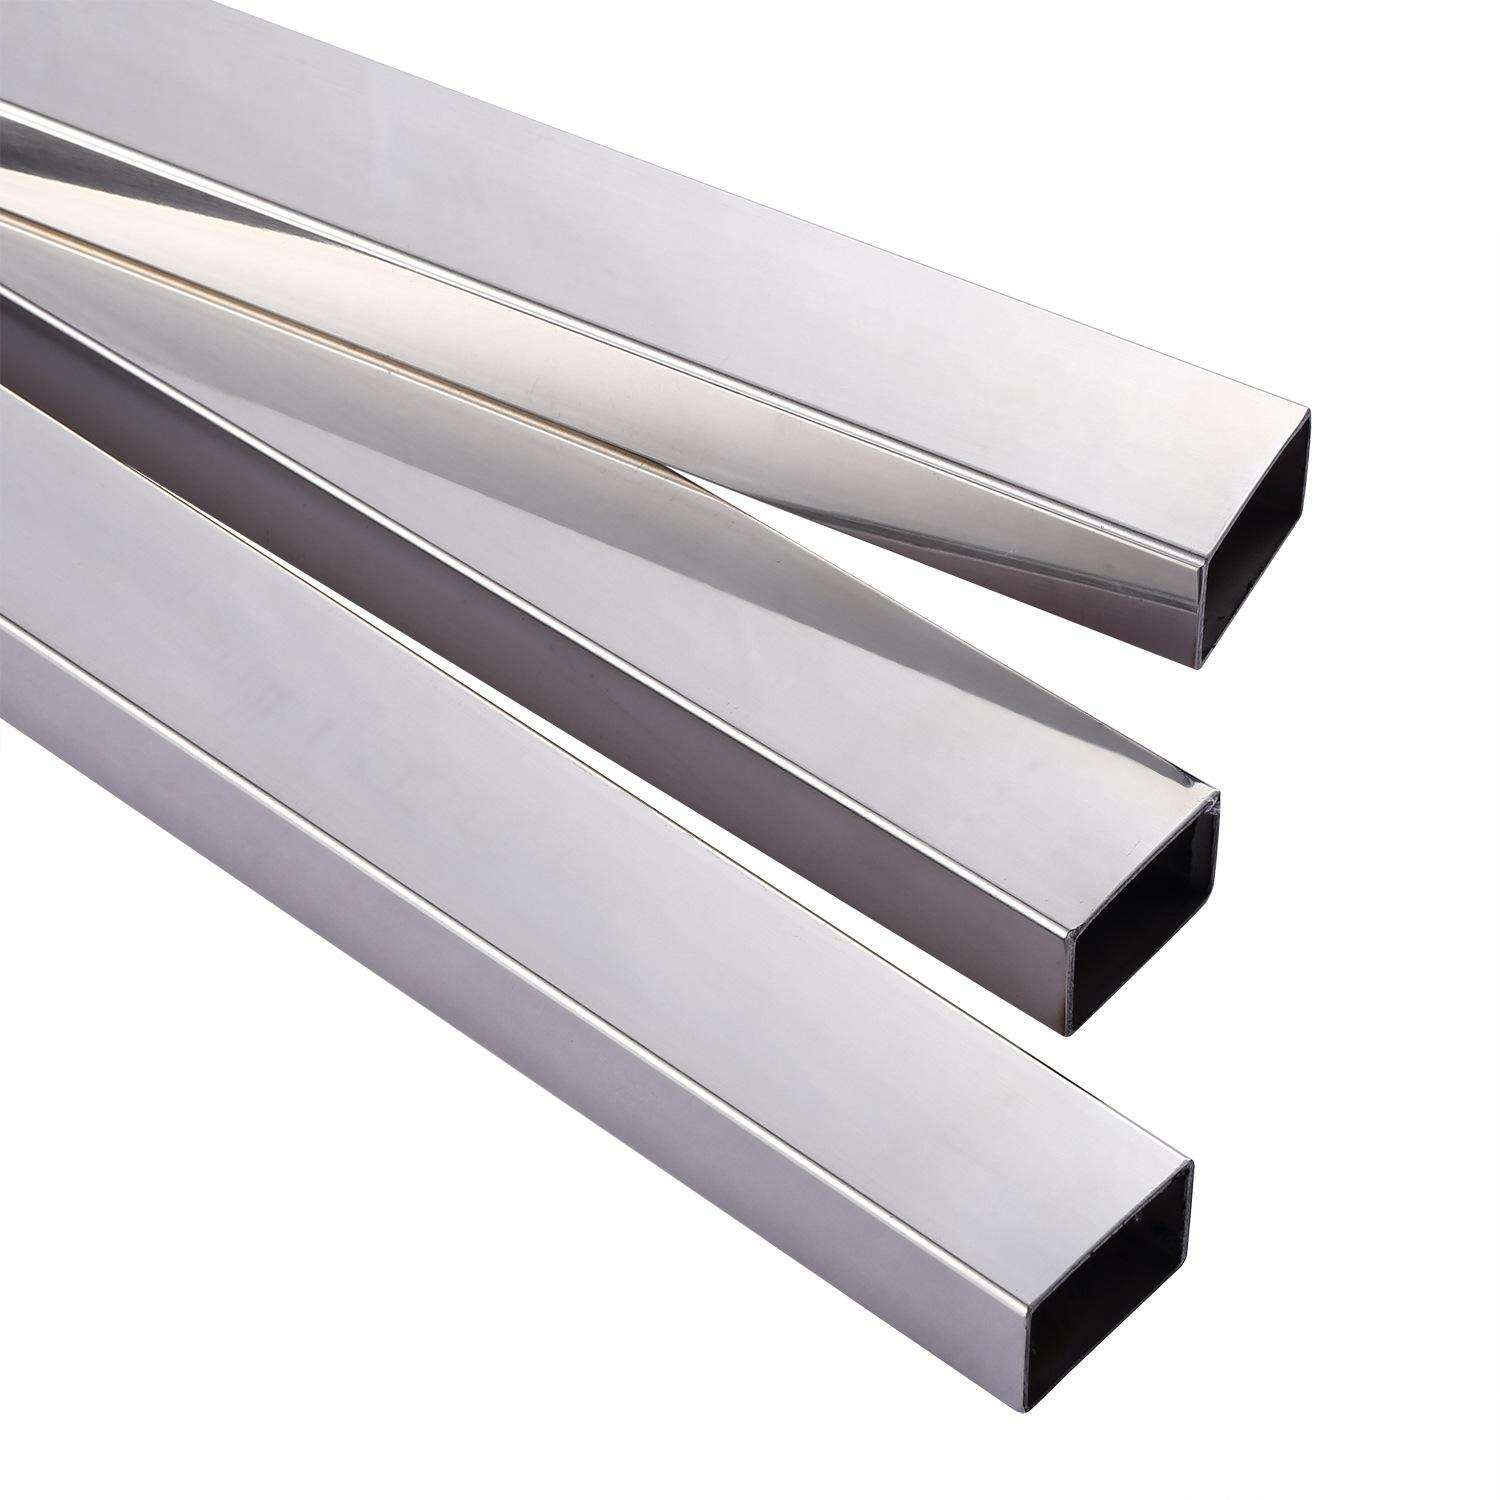 Hot selling quality tube hollow steel carbon iron square tube (Q235B, ASTM A36, SS400, S235JR,